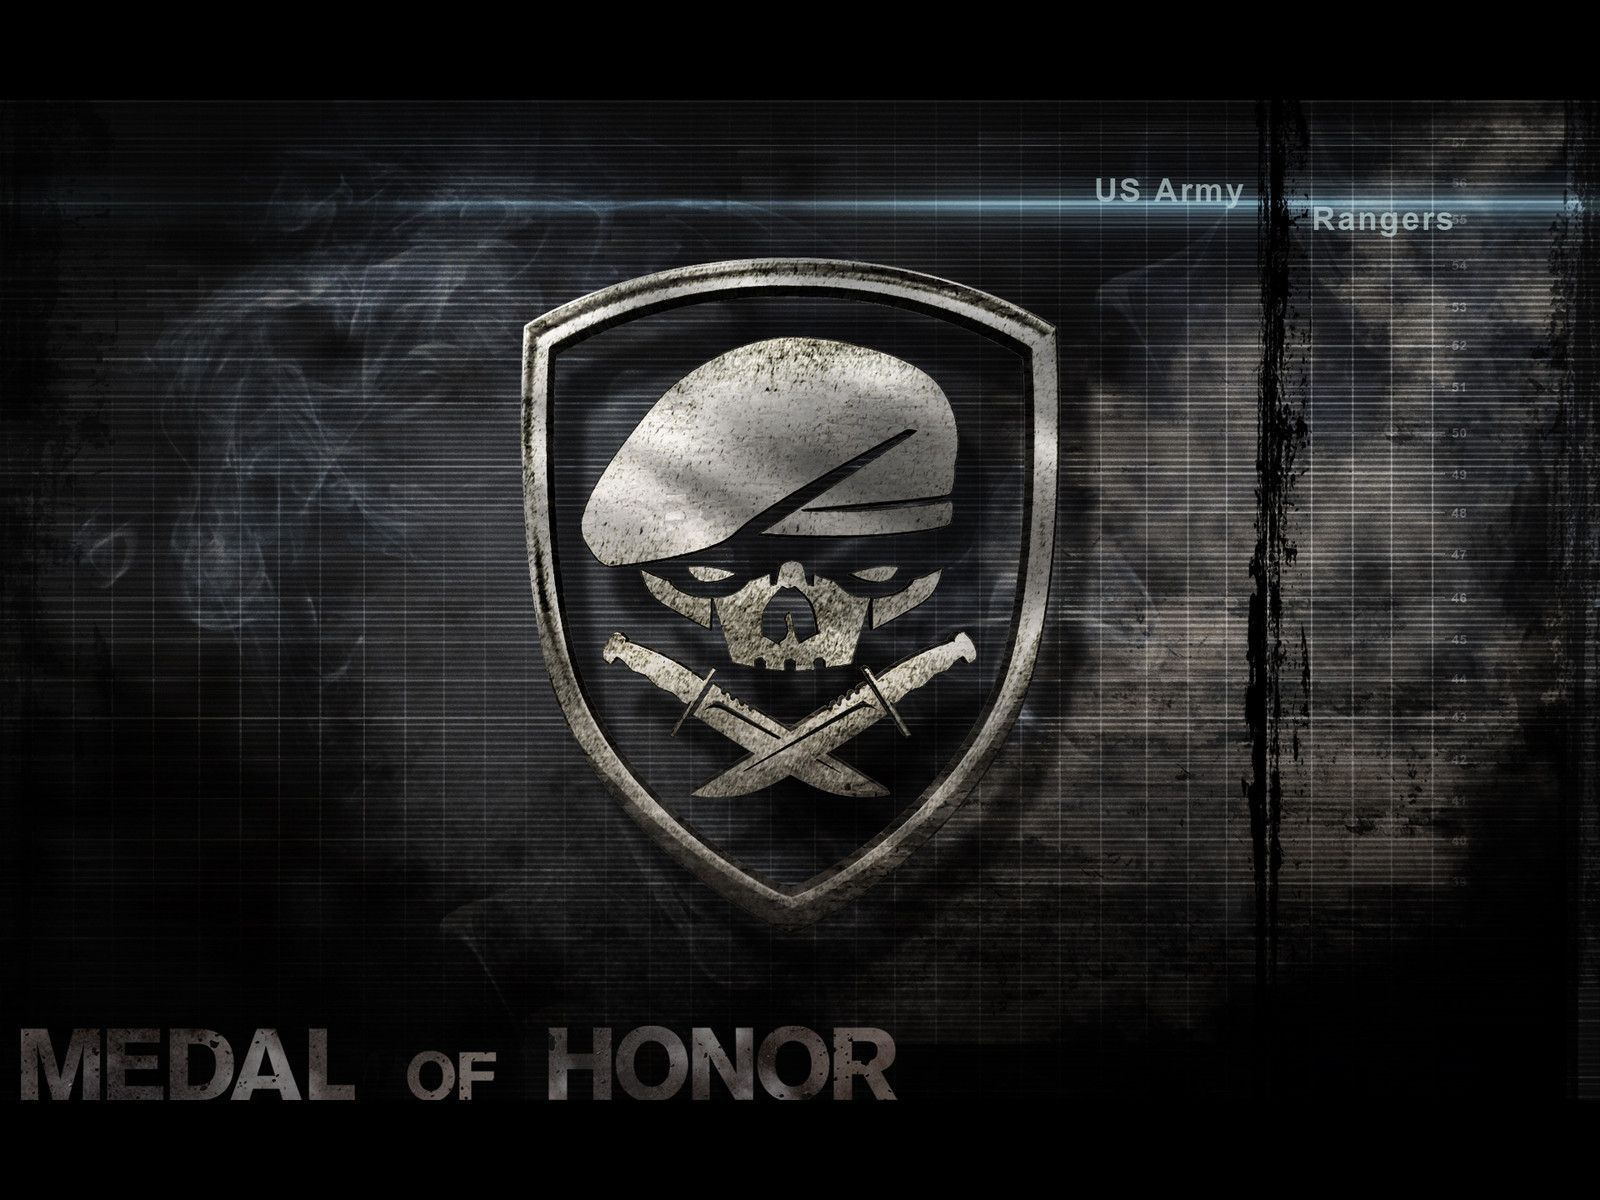 soviet badge hd desktop wallpaper high definition fullscreen